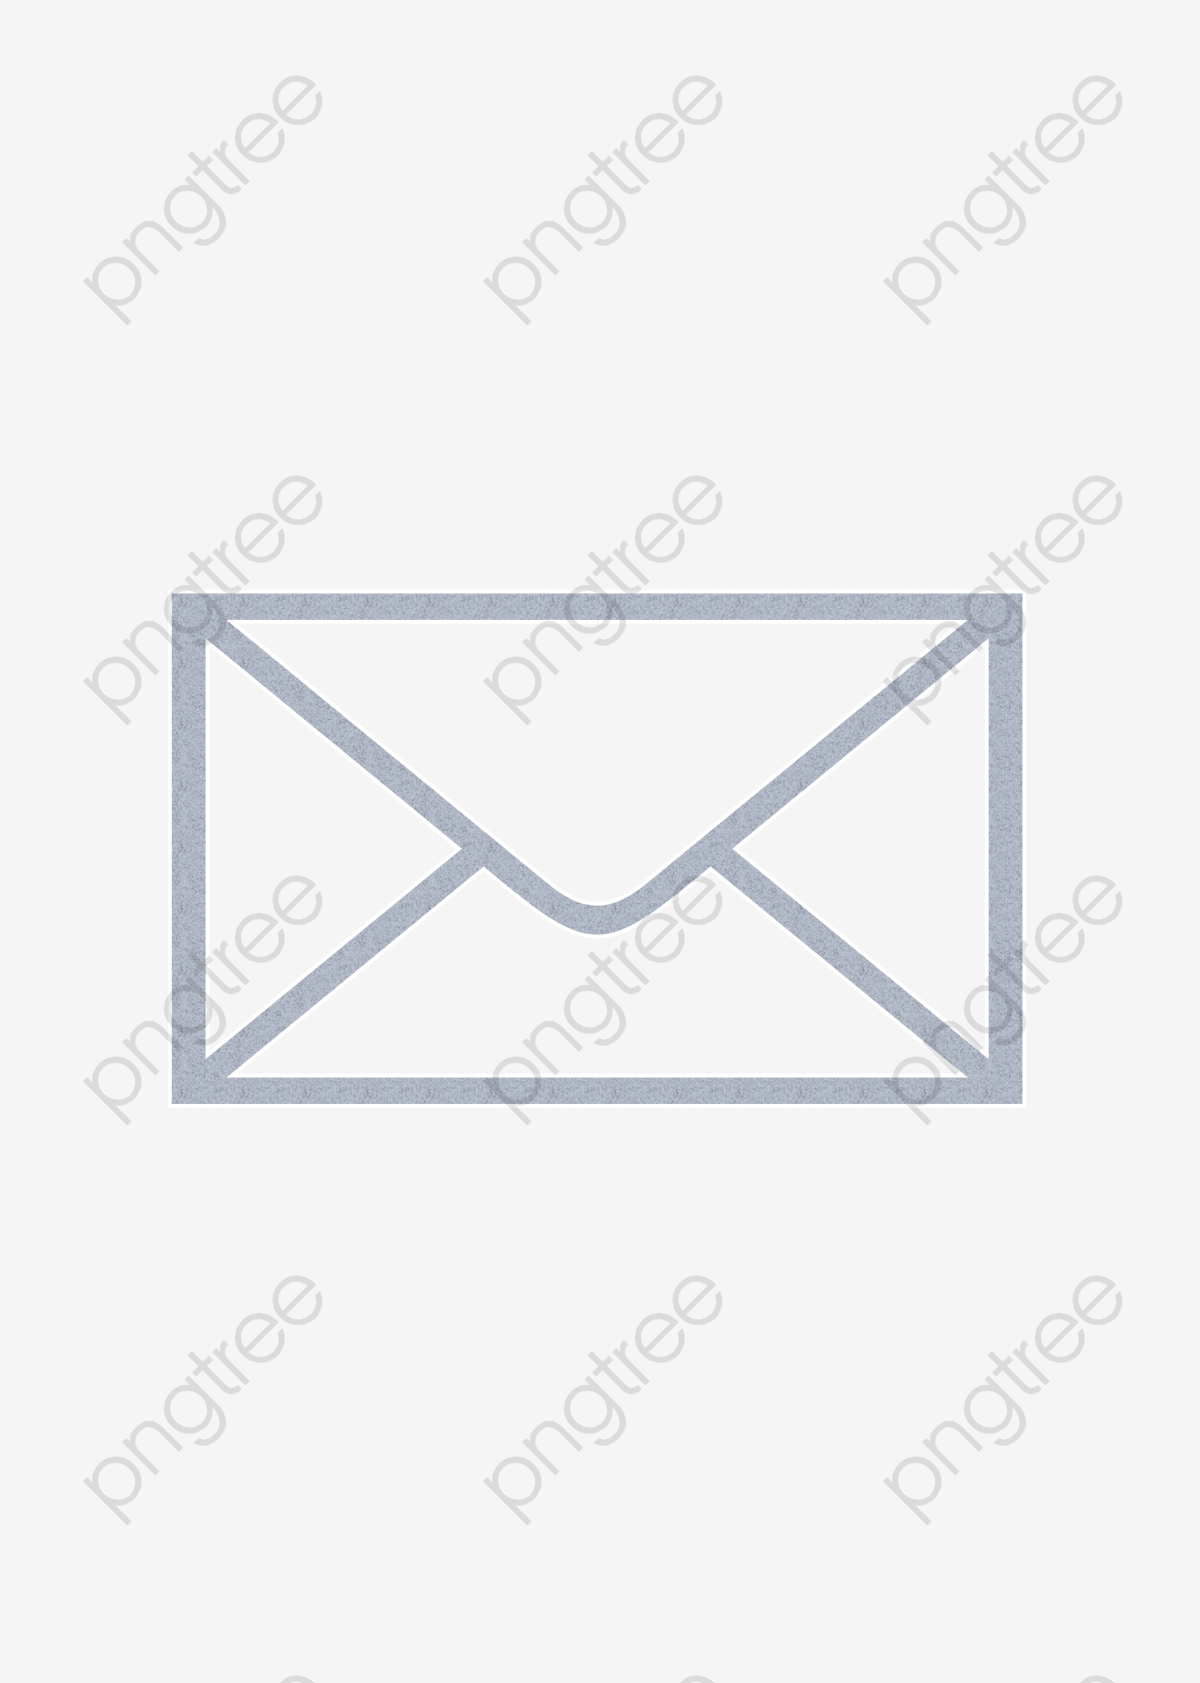 Envelope clipart simple. Gray png transparent image